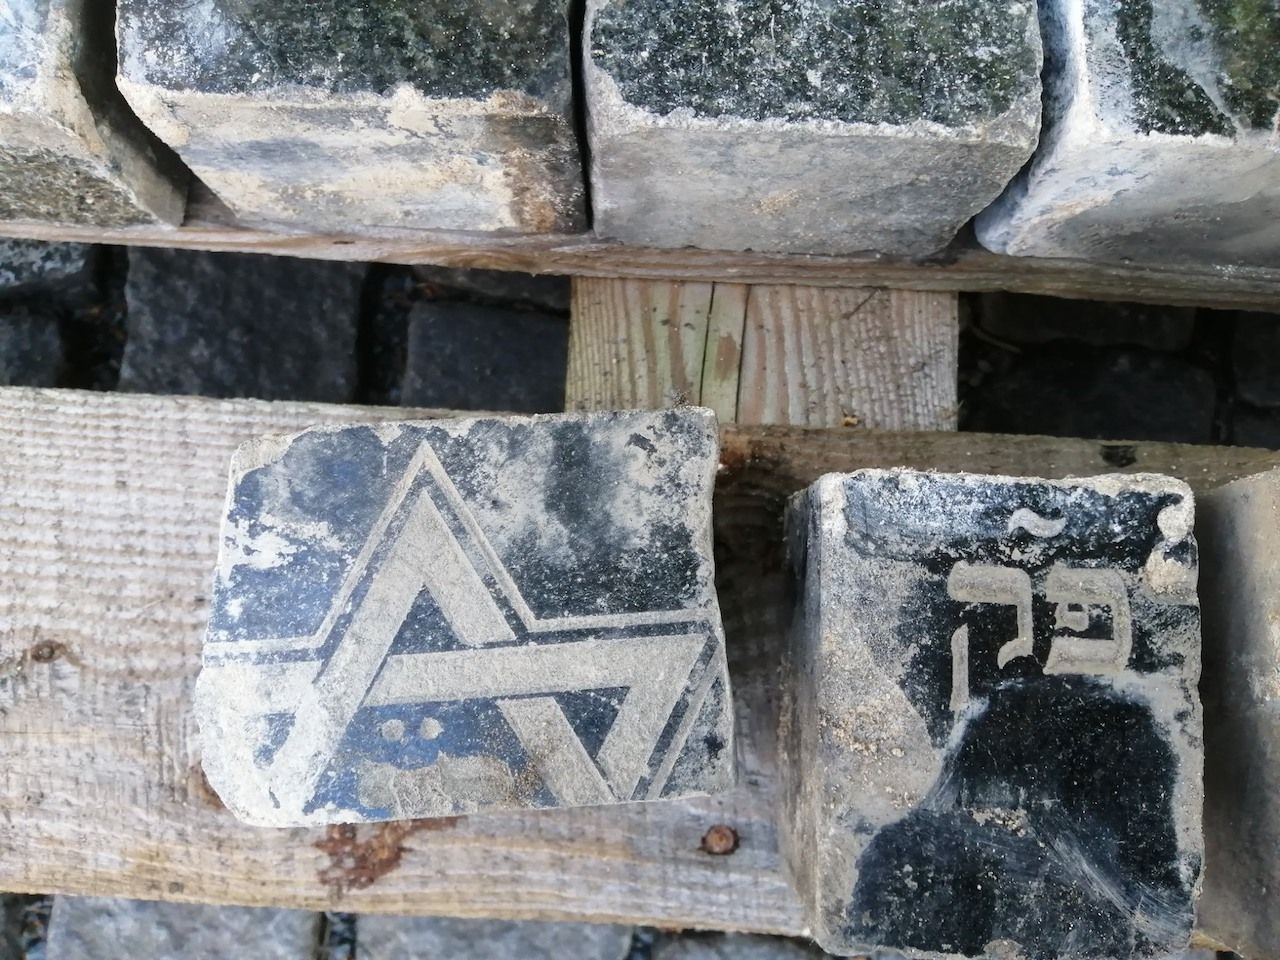 Jewish gravestones unearthed during construction in Prague